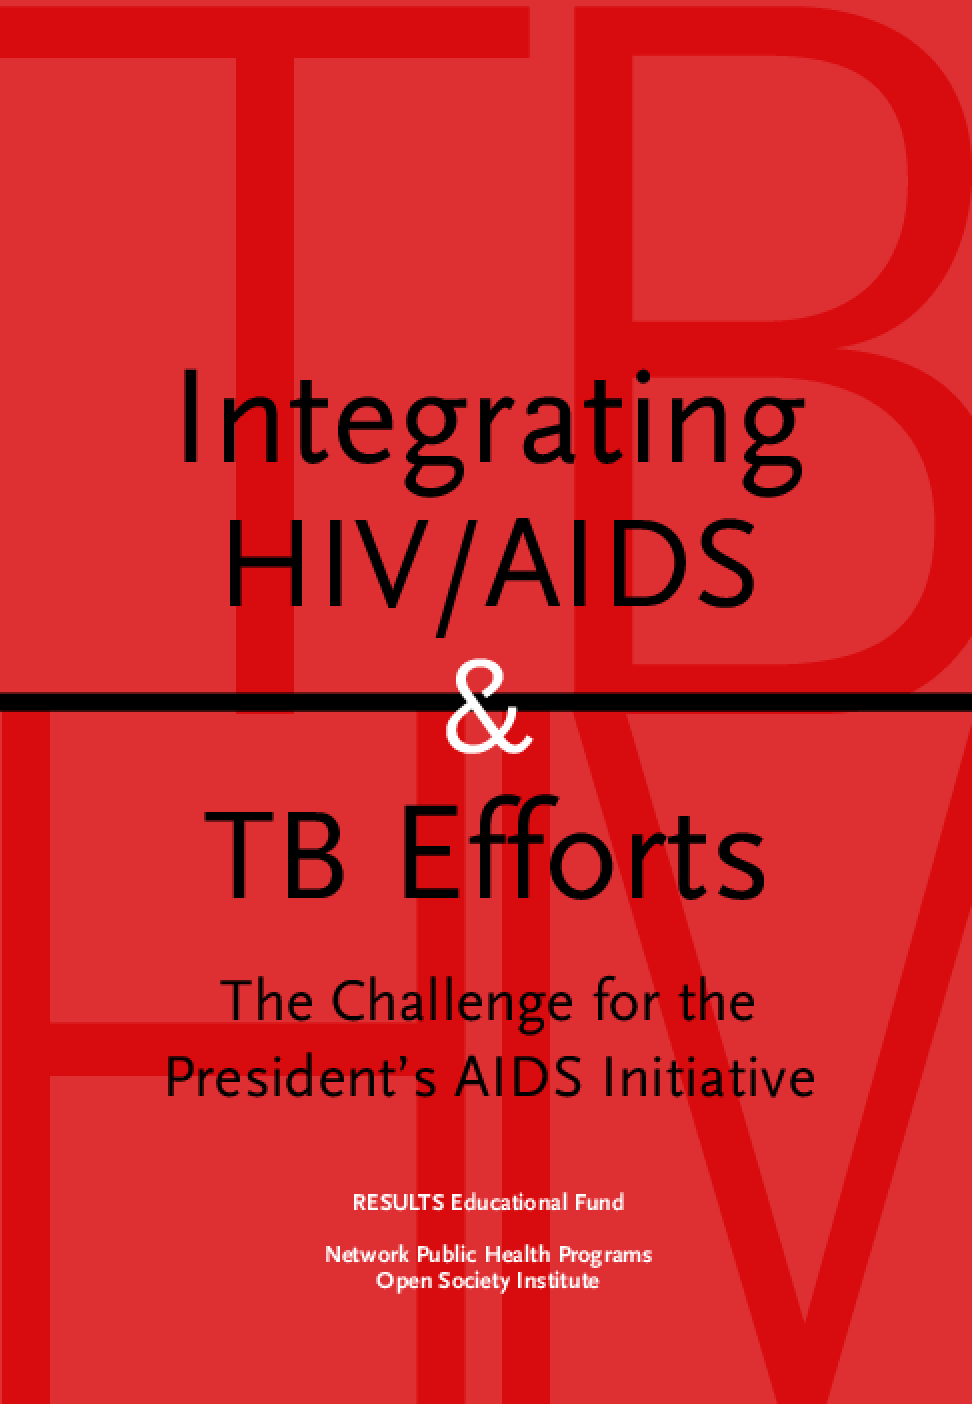 Integrating HIV/AIDS and TB Efforts: The Challenge for the President's AIDS Initiative